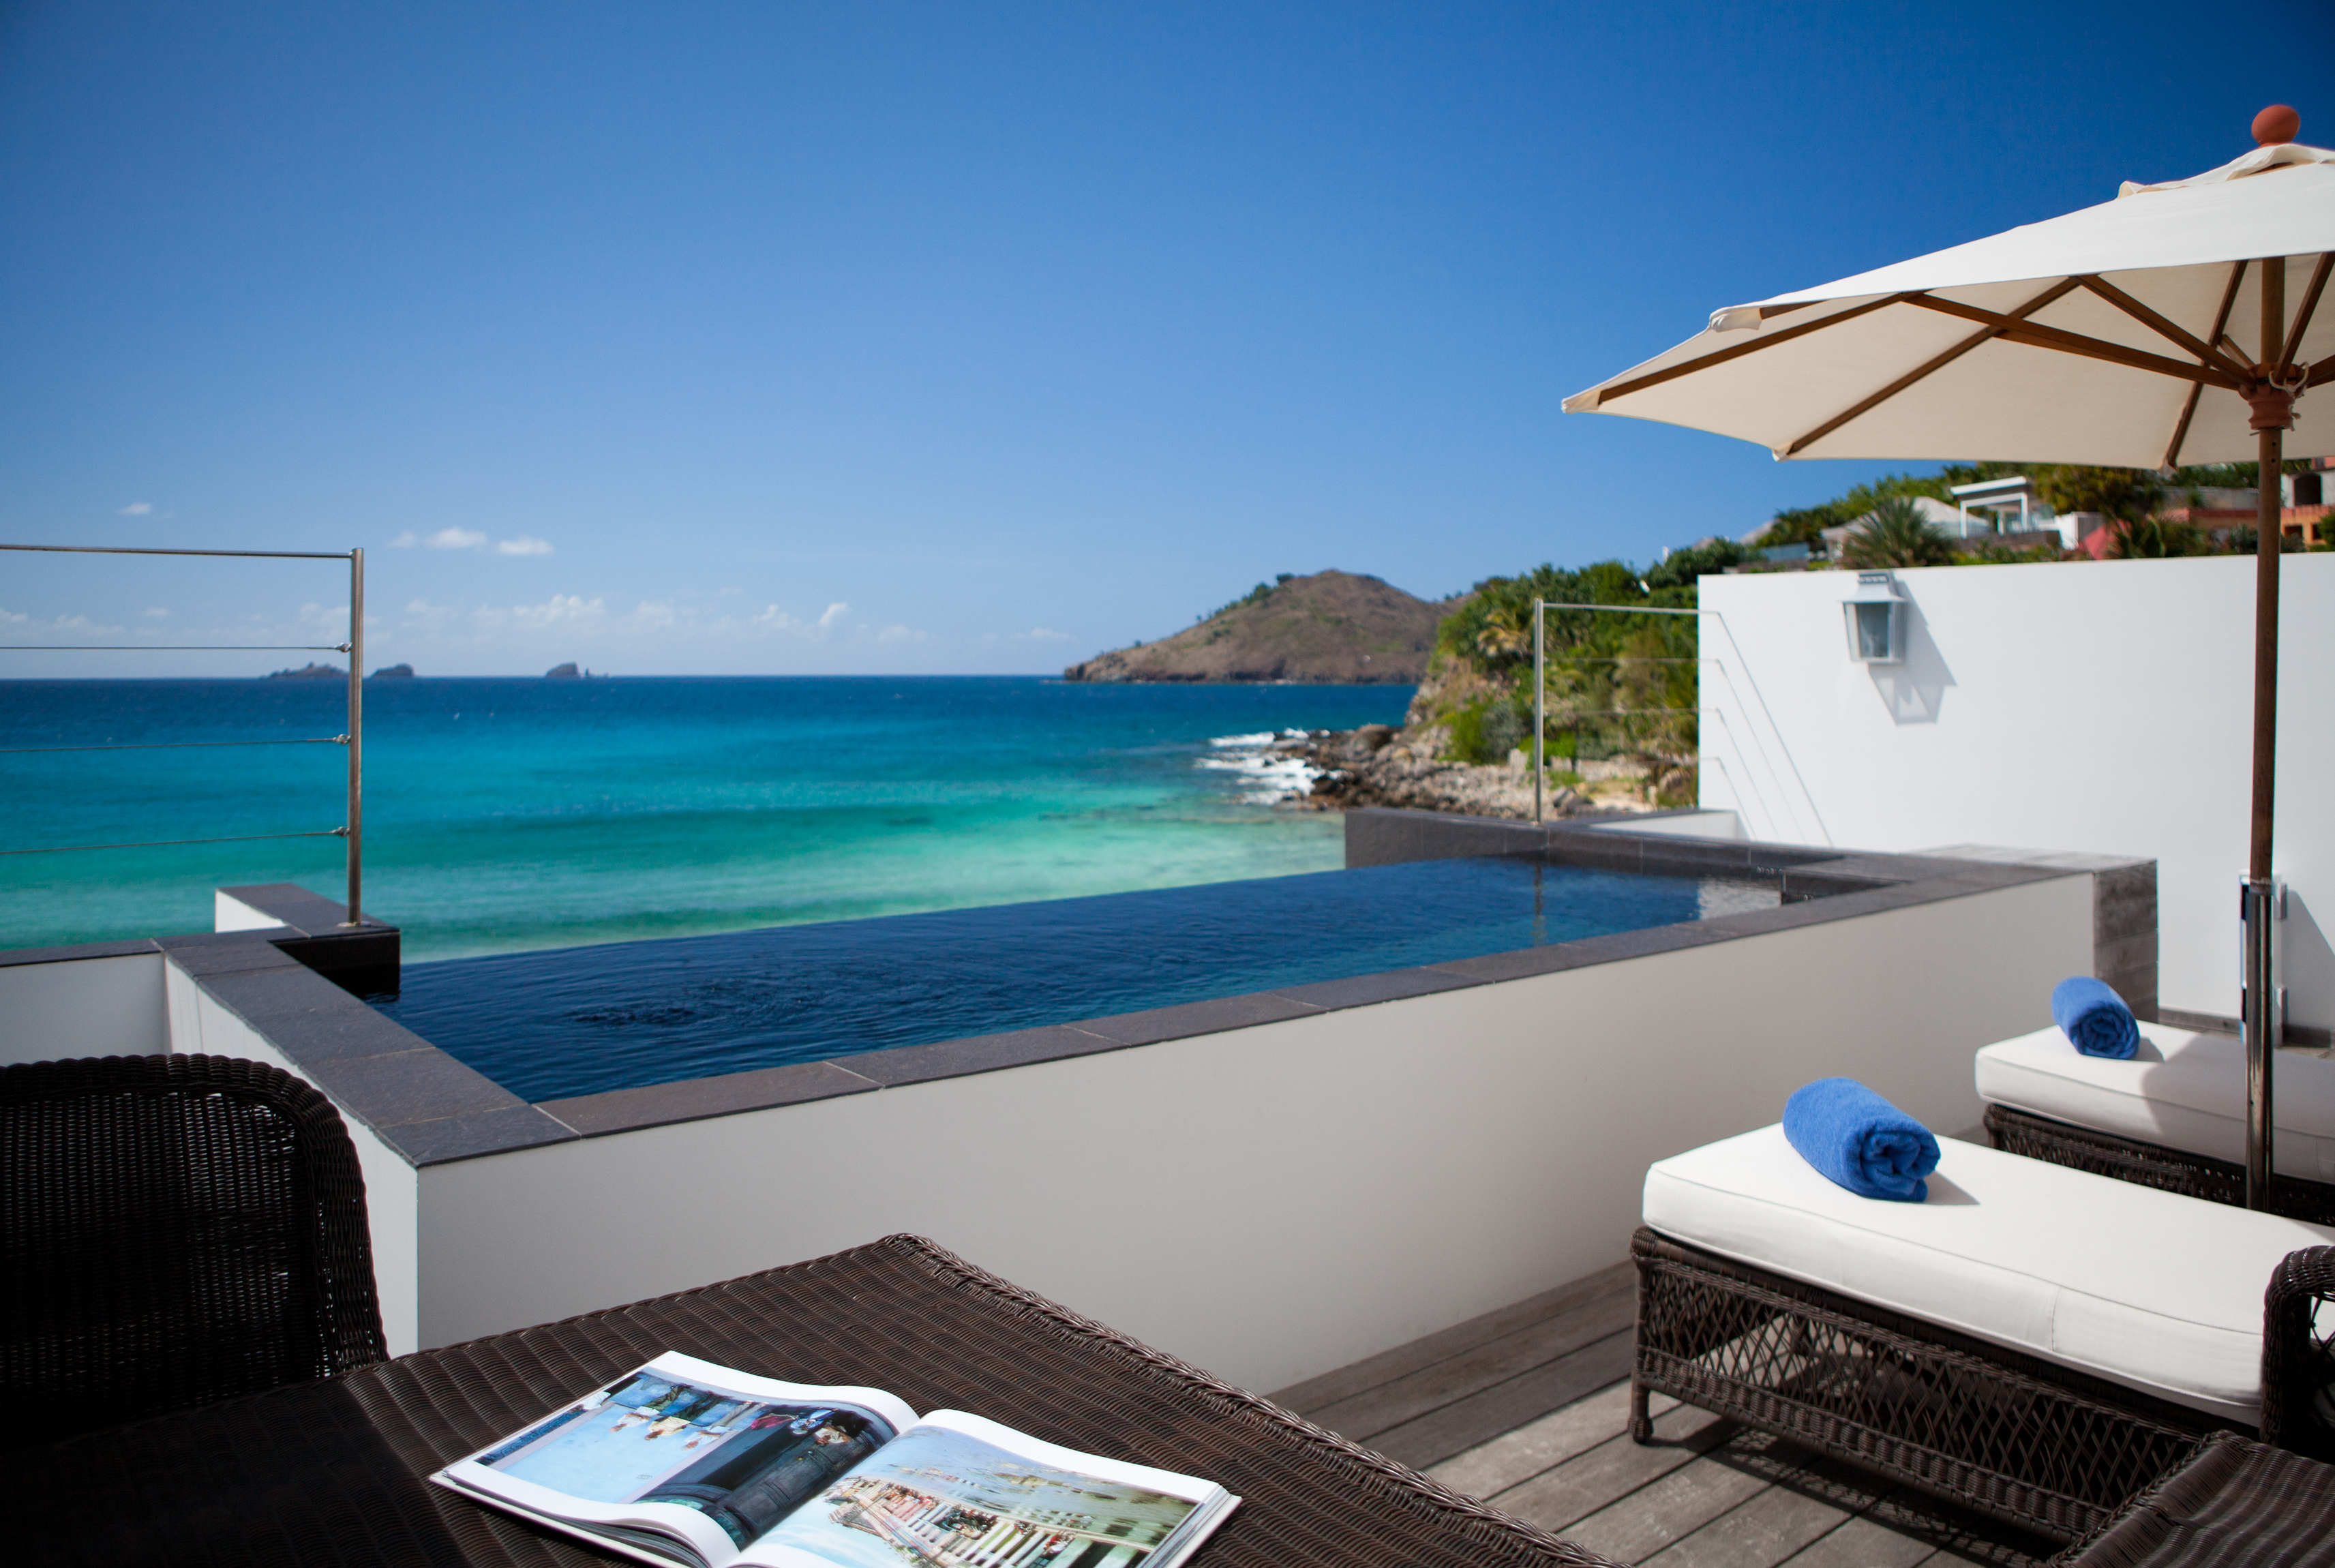 Ocean style martinique opens french coco boutique hotel for Boutique hotel martinique